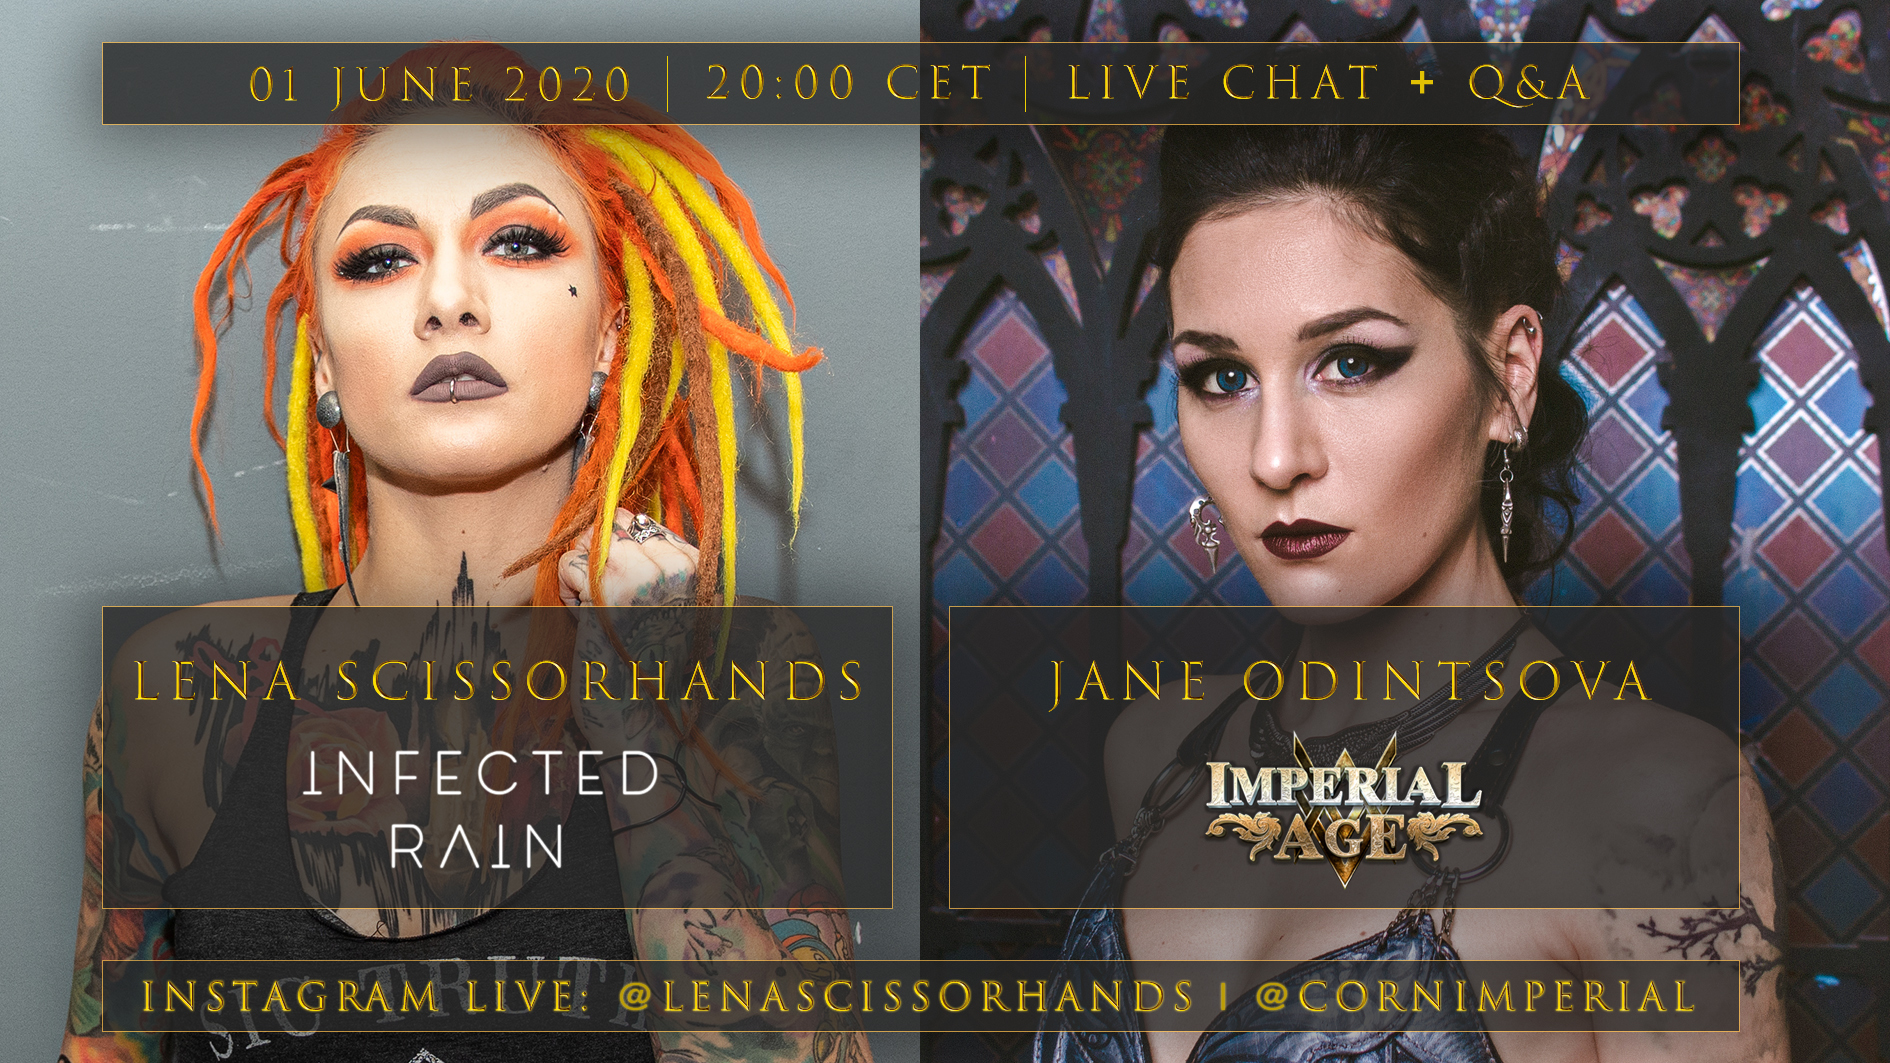 News: Lena Scissorhands (Infected Rain) And Jane Odintsova (Imperial Age) Live Q&A And Online Chat